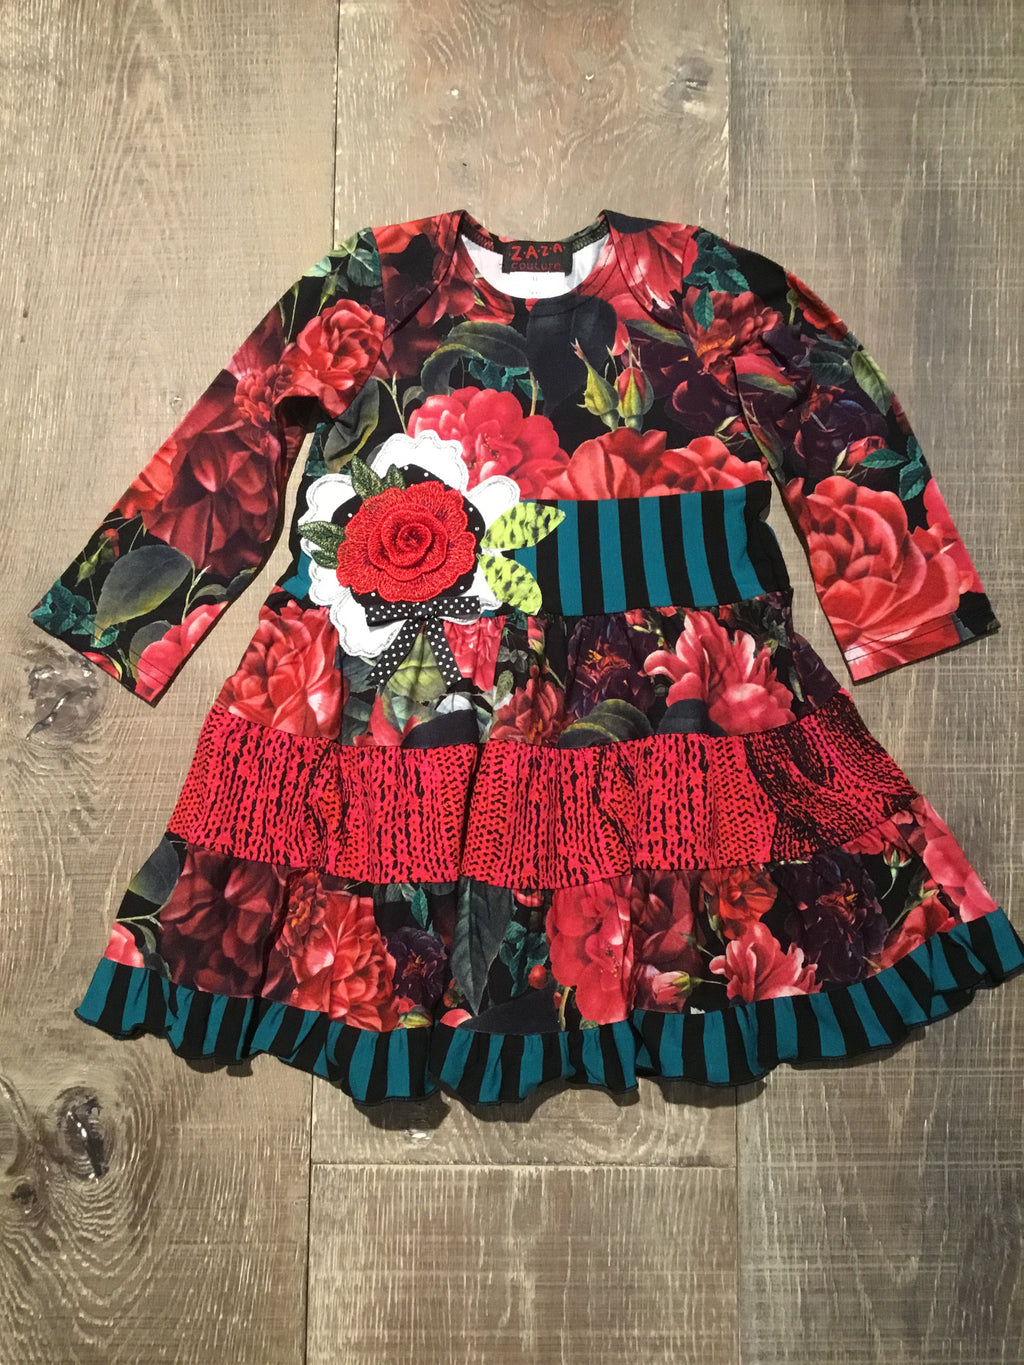 Red Rose Cinderella Dress